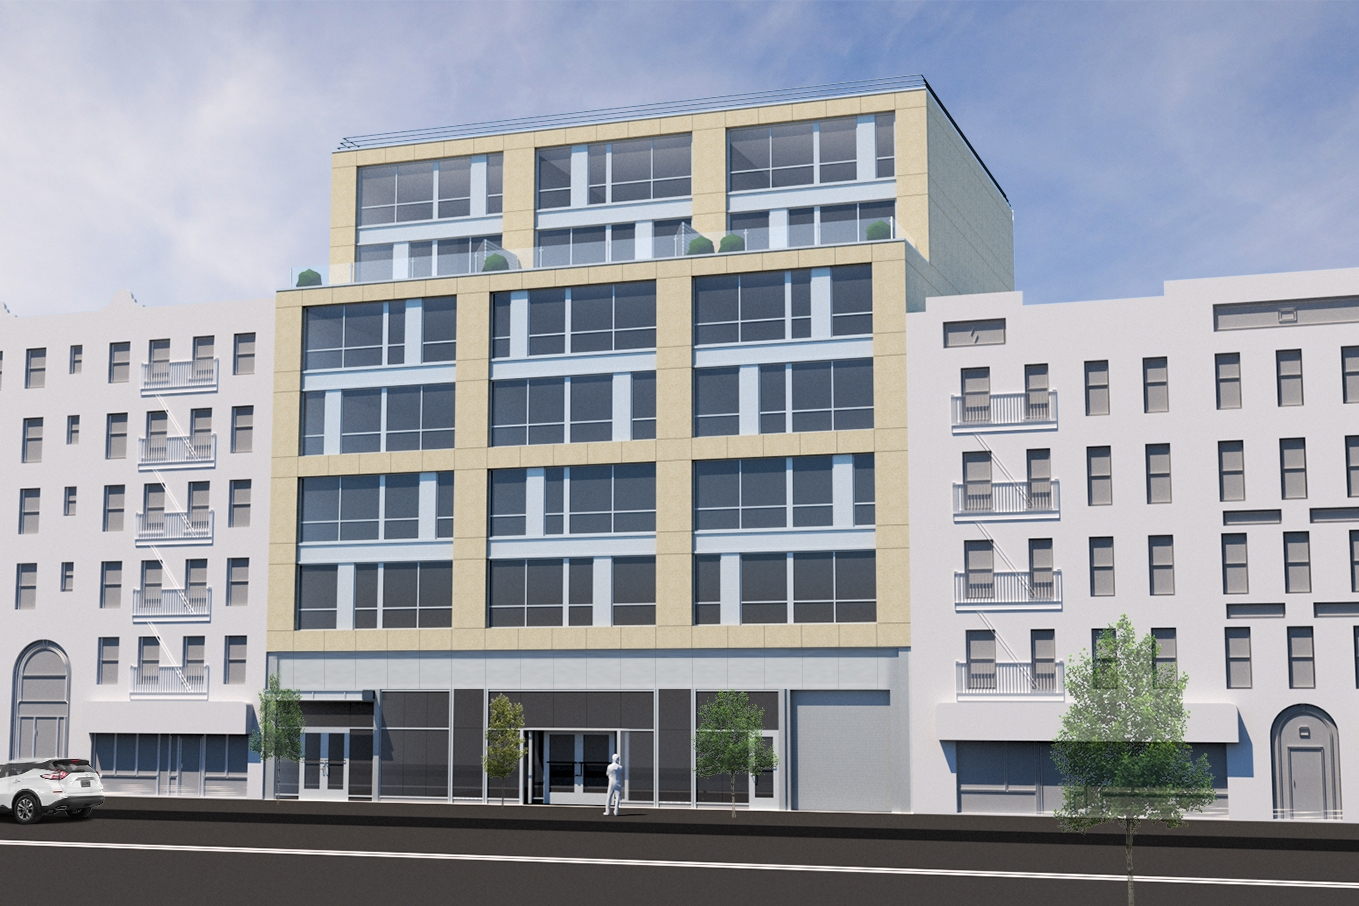 2043 Webster Avenue - 34,000 SF mixed-use development in the Bronx, NY. There are 36 units in this new building that includes retail on the ground floor, residential amenities and a community recreation space on top of the second floor roof.